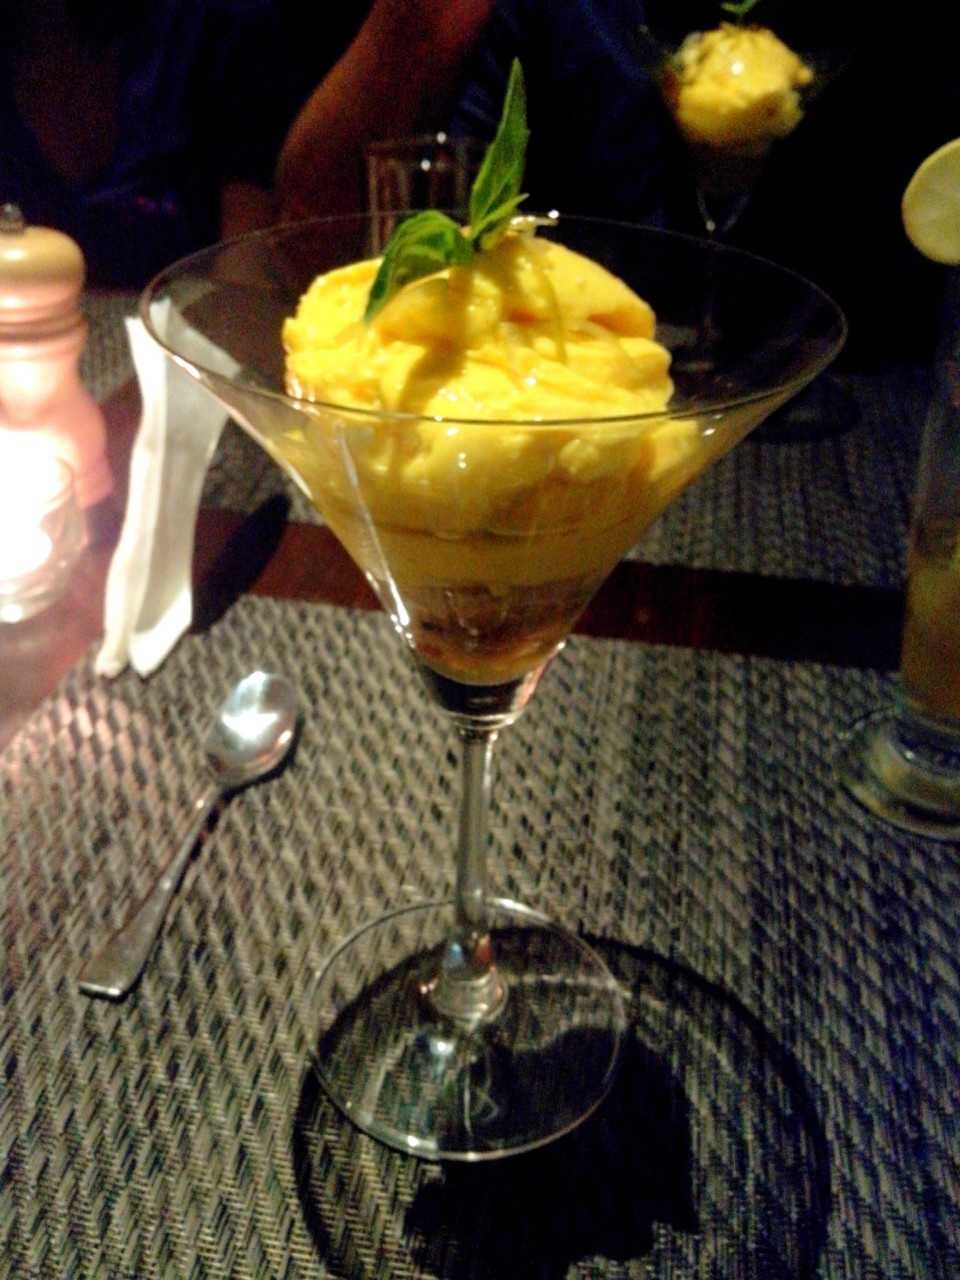 Deconstructed mango Cheesecake